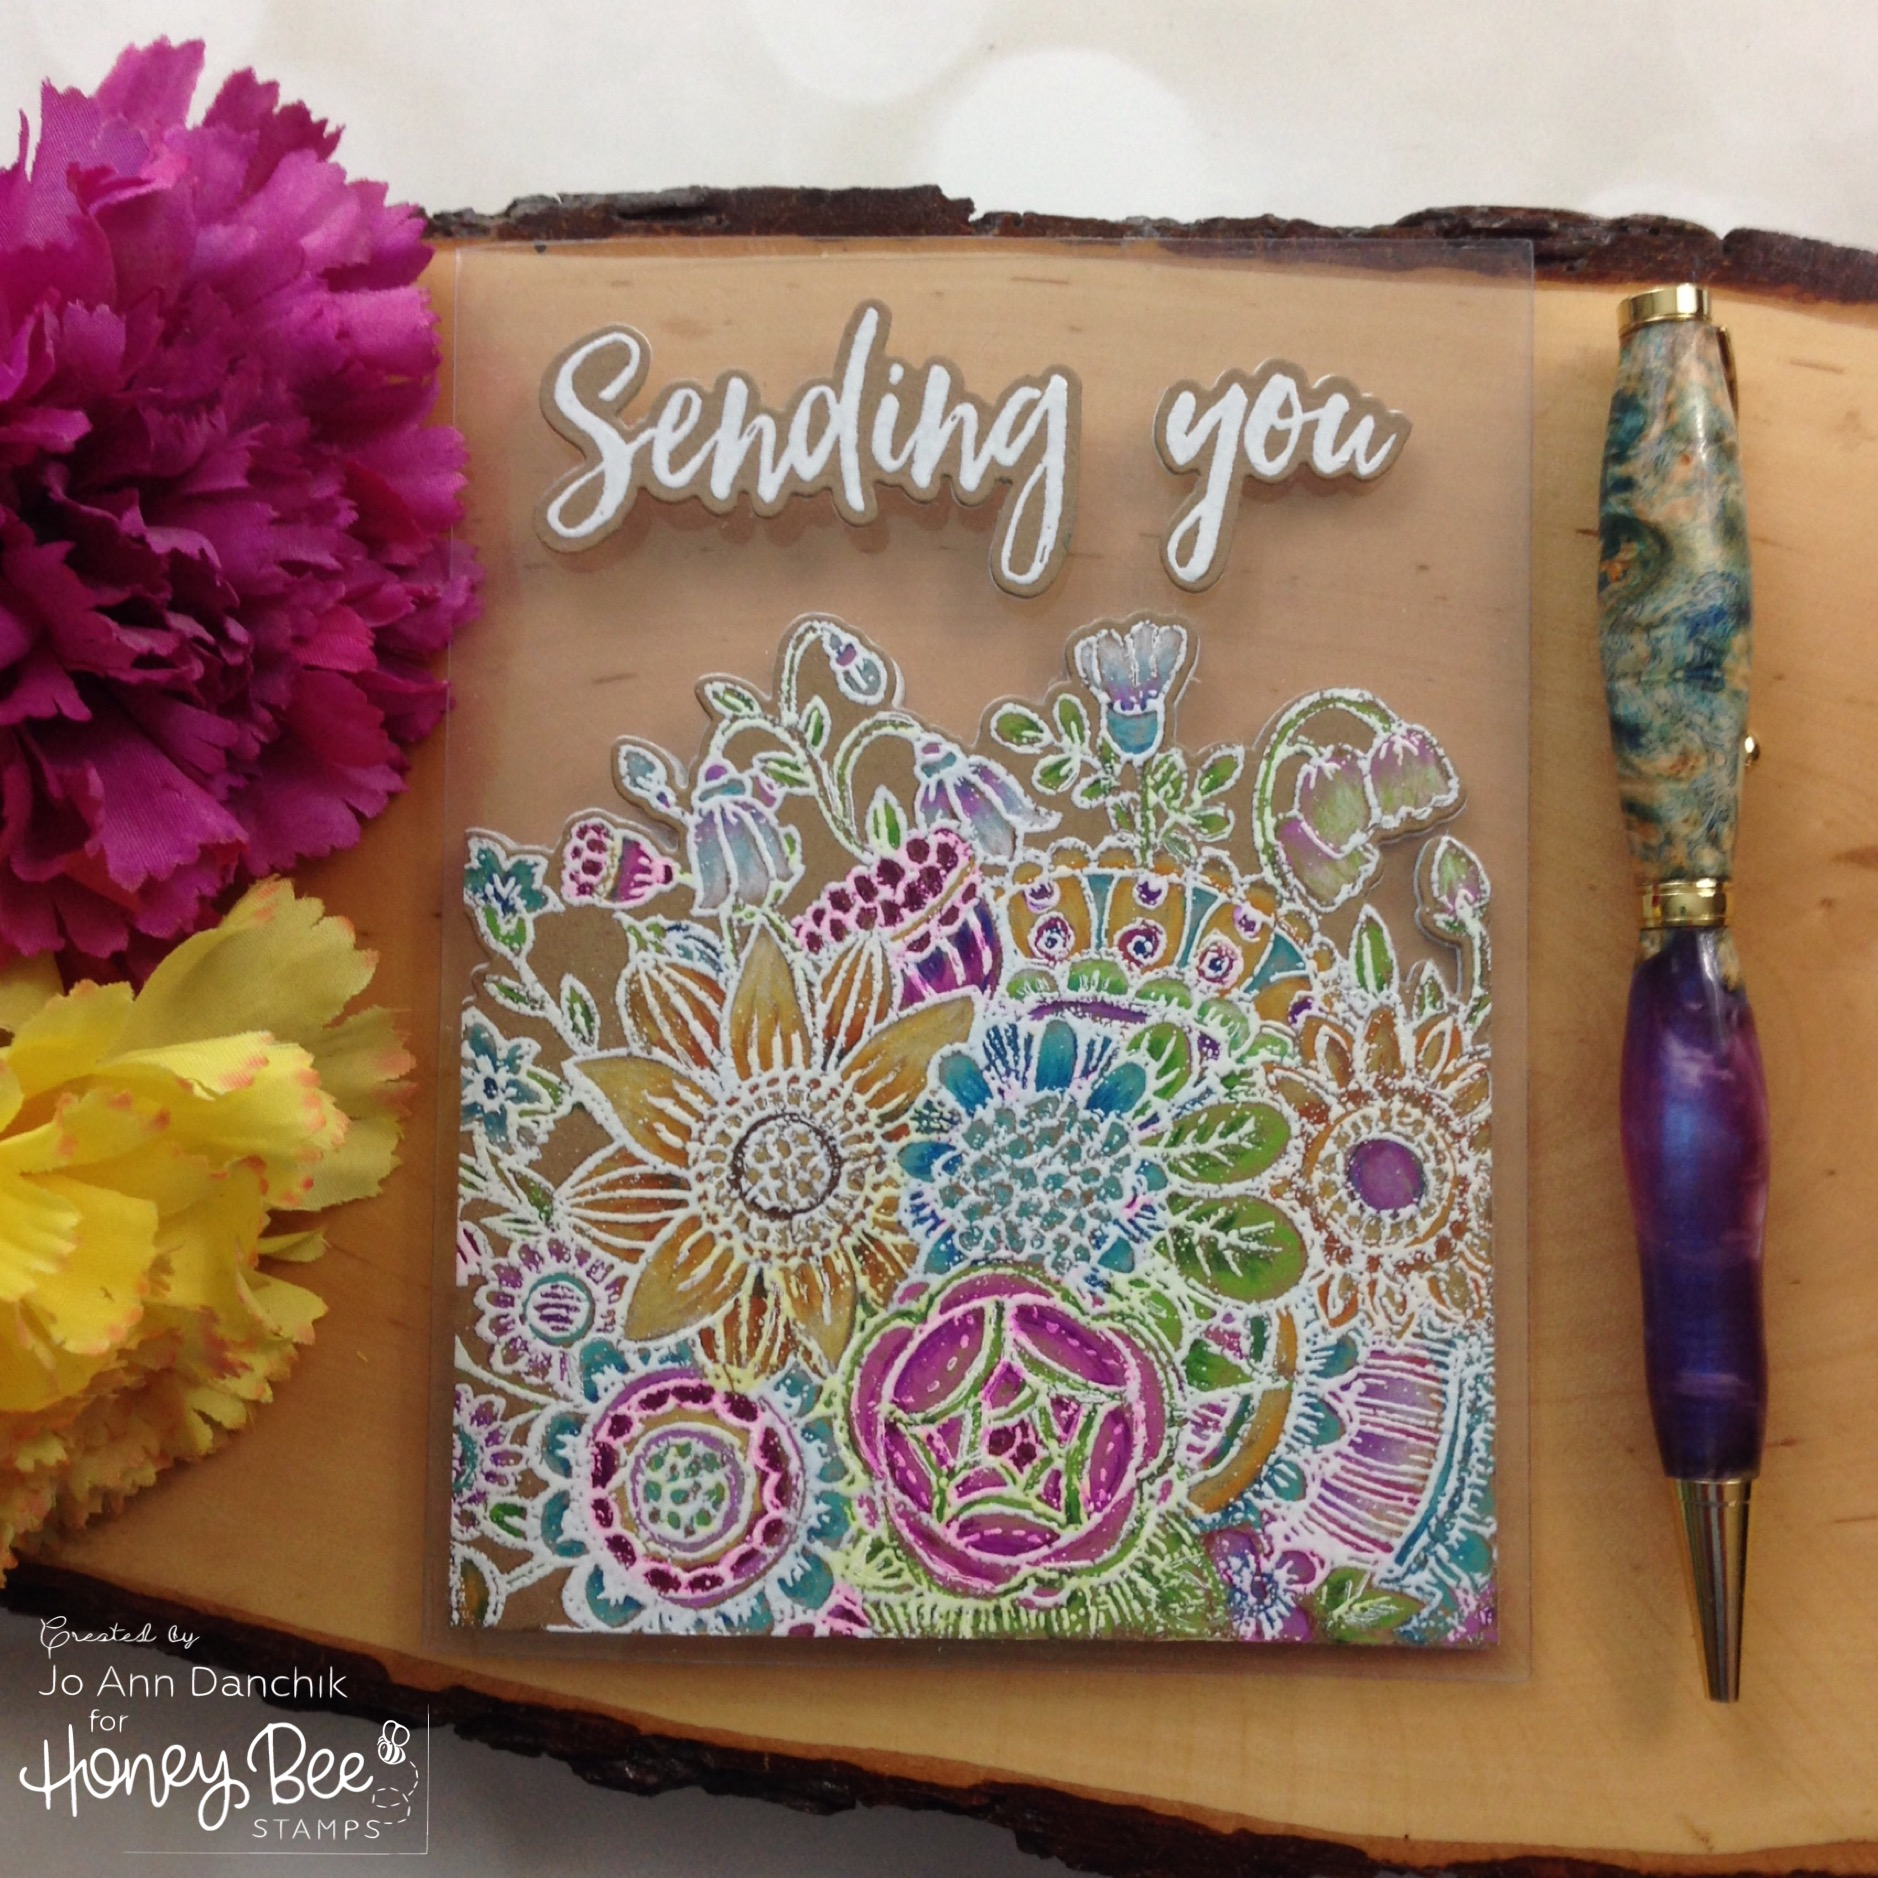 Creative Sundays With Jo Ann: Sending You My Love